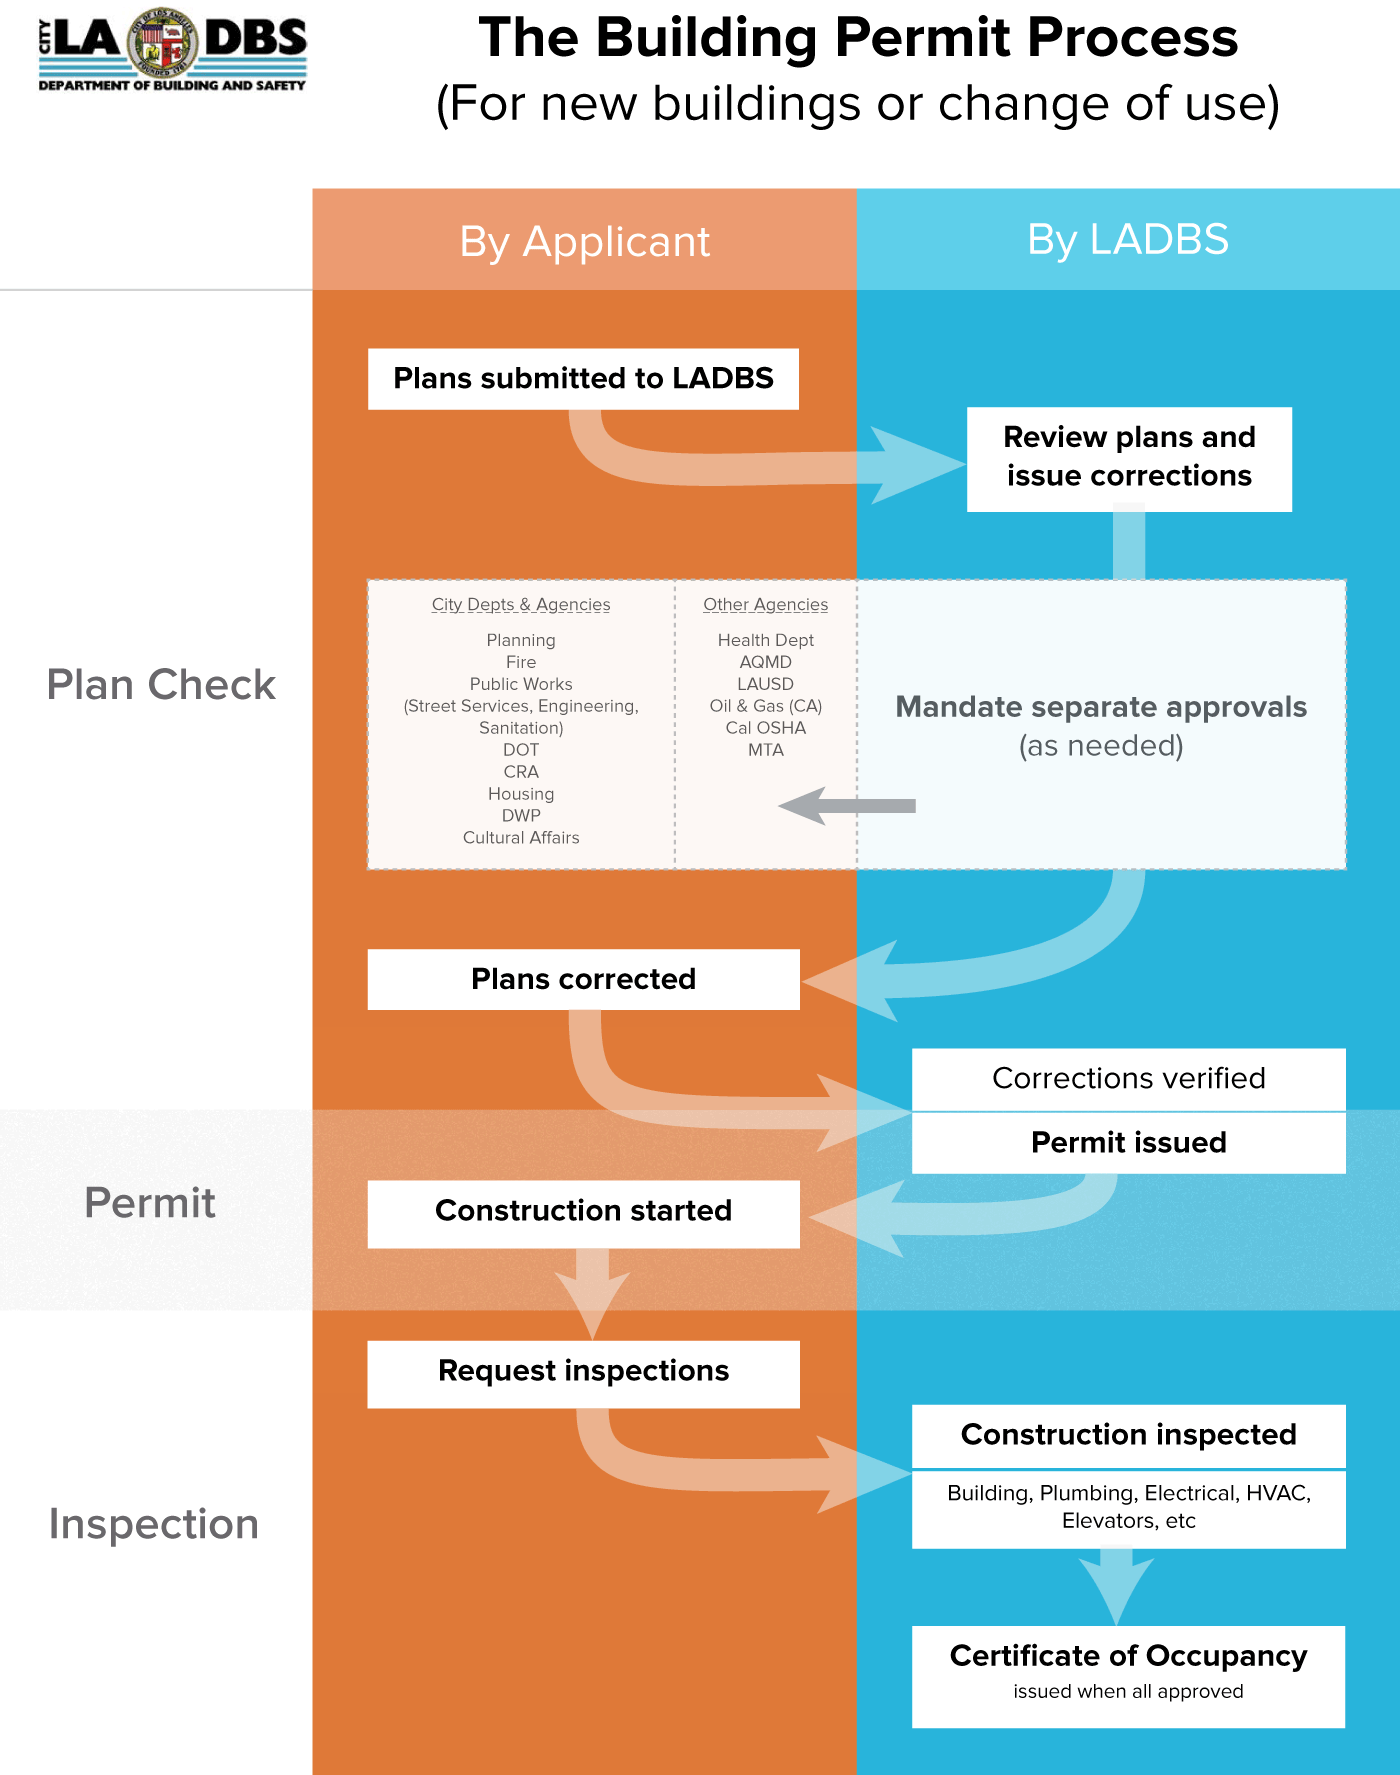 Los angeles dept of building safety anita cheng redesigned building permit process flowchart visually separating responsibilities and stages geenschuldenfo Choice Image